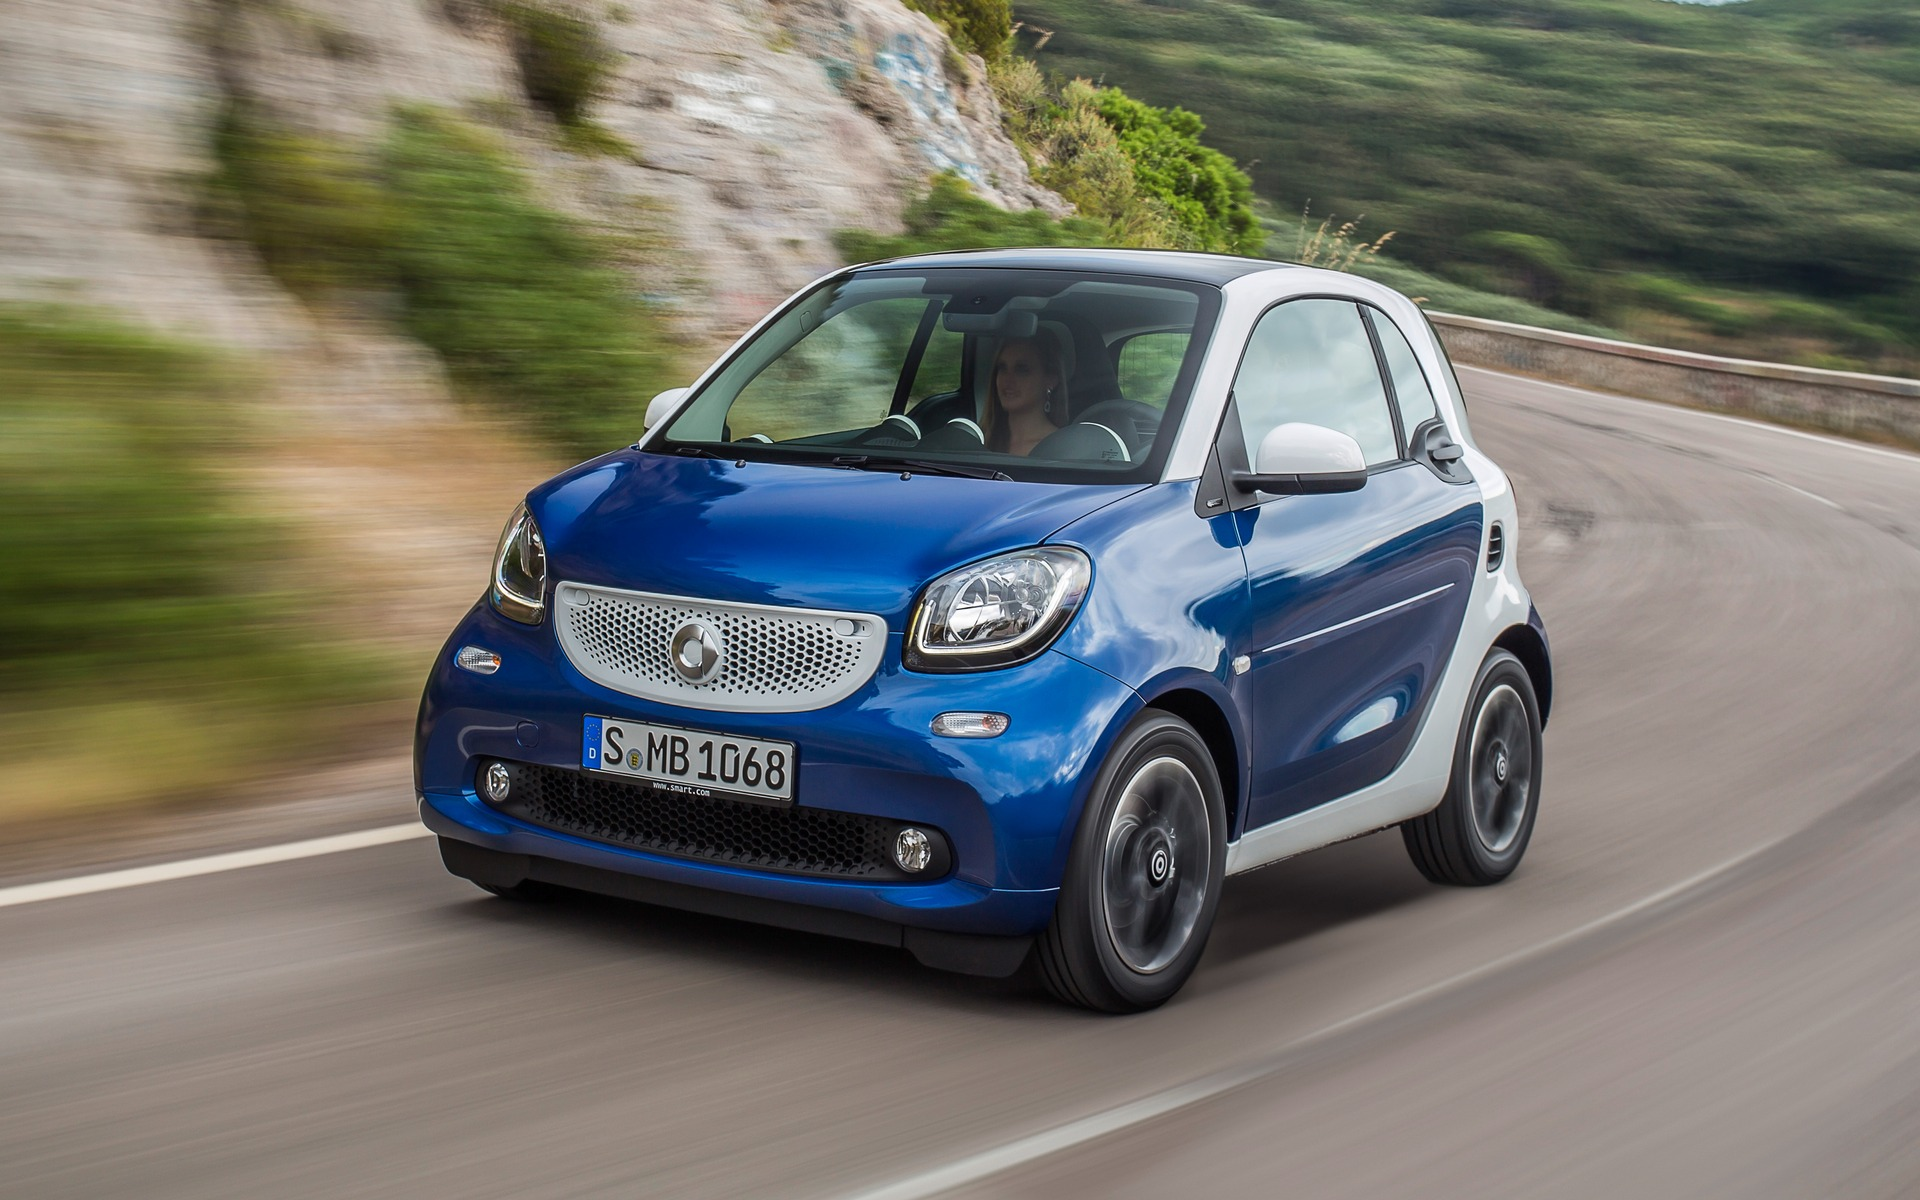 The new smart's lines are more mature and virile than before.